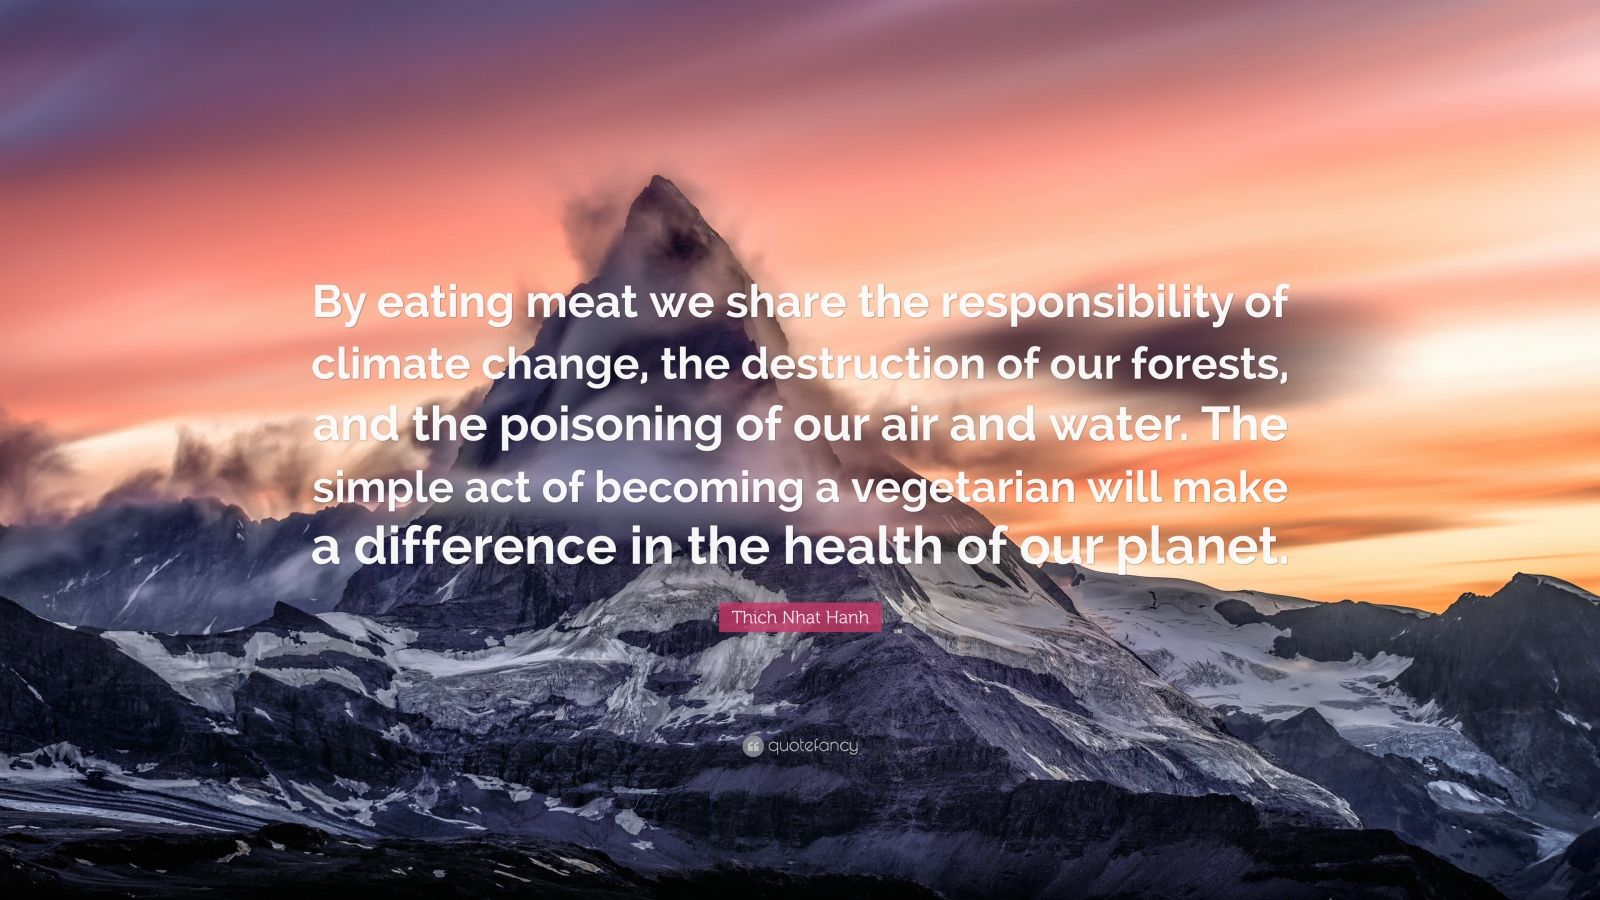 "Thich Nhat Hanh Quote: ""By eating meat we share the responsibility of climate change, the destruction of our forests, and the poisoning of our air and water. The simple act of becoming a vegetarian will make a difference in the health of our planet."""